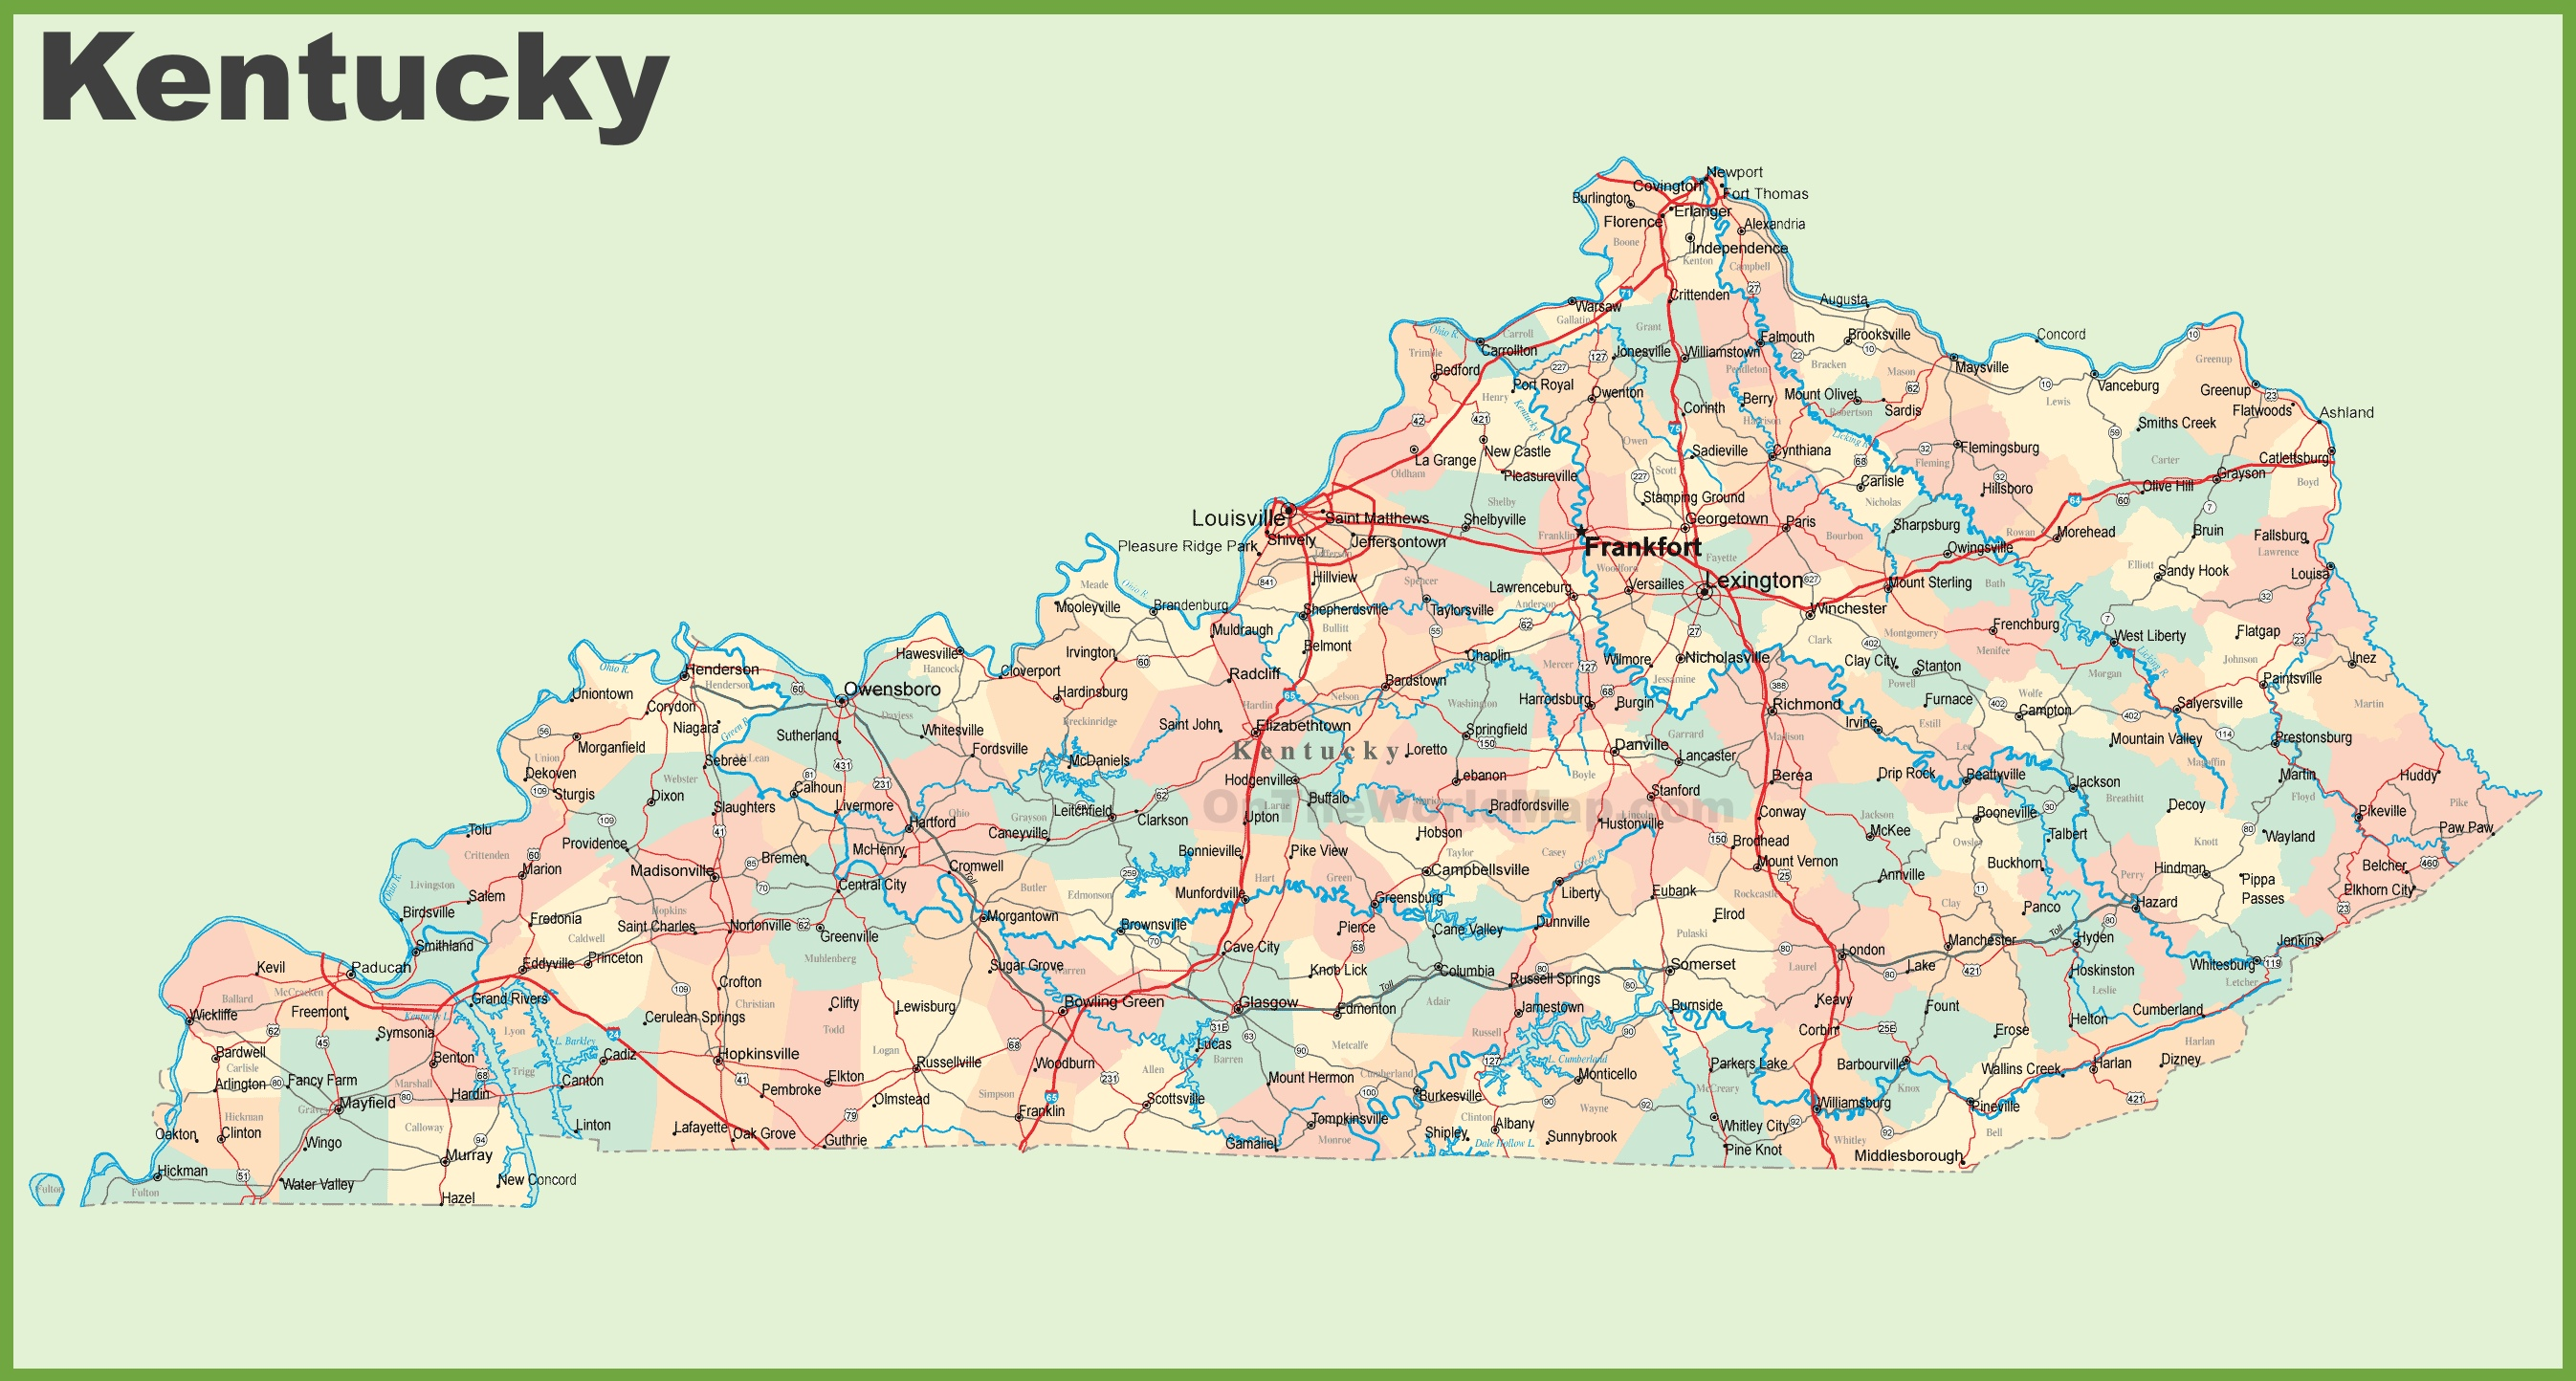 This map shows cities, towns, counties, main roads and secondary roads in Kentucky.